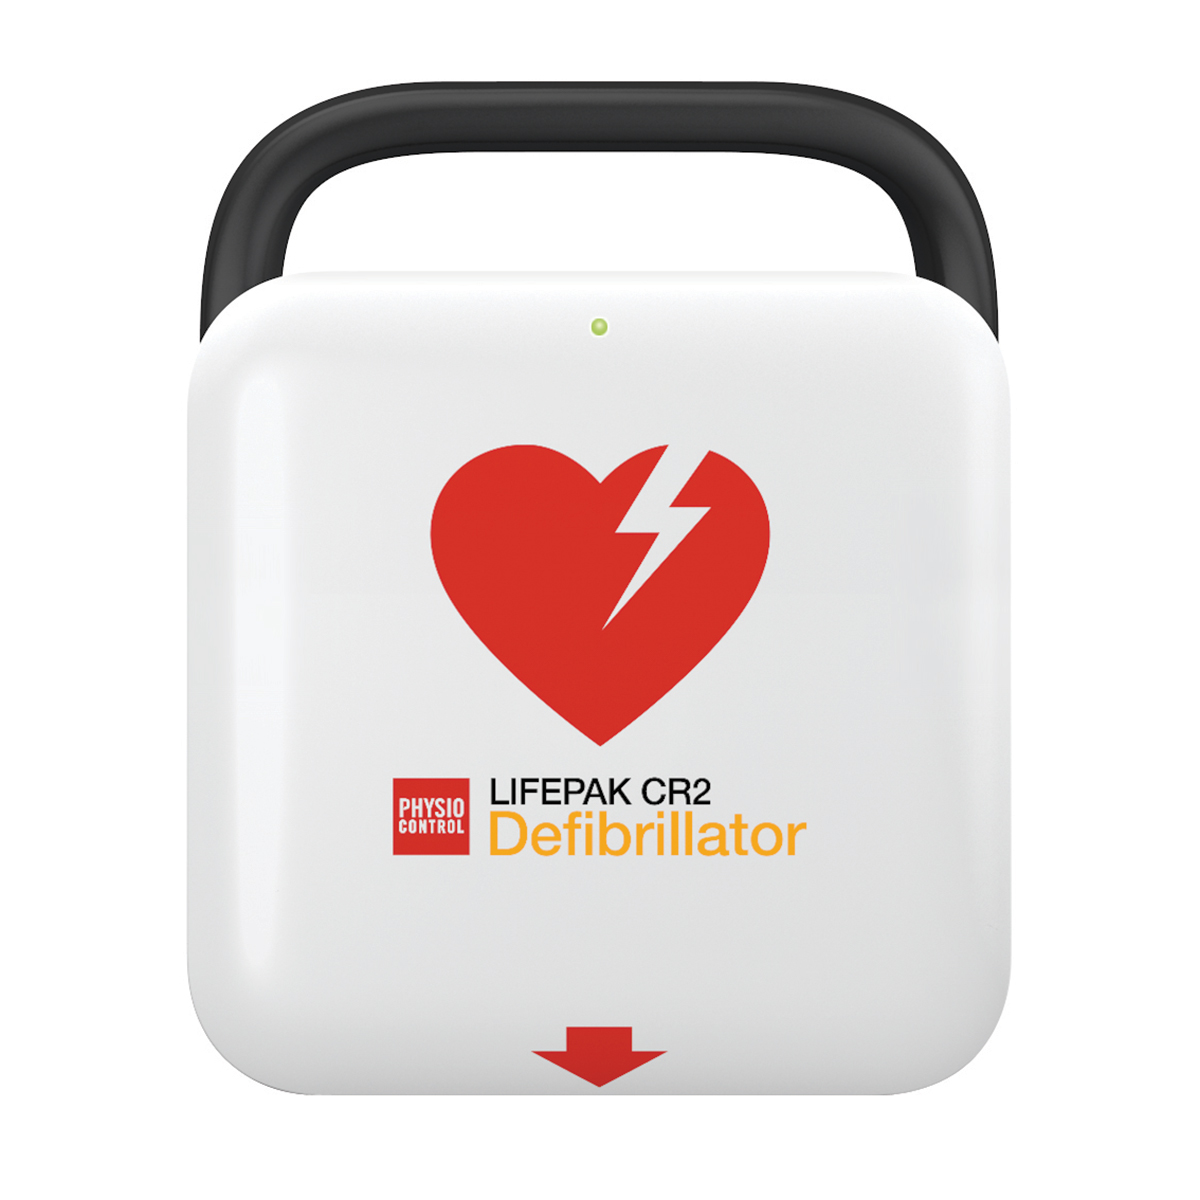 Physio-Control Lifepak® CR2 Semi-Automatic Defibrillator with Handle and WiFi 30:2